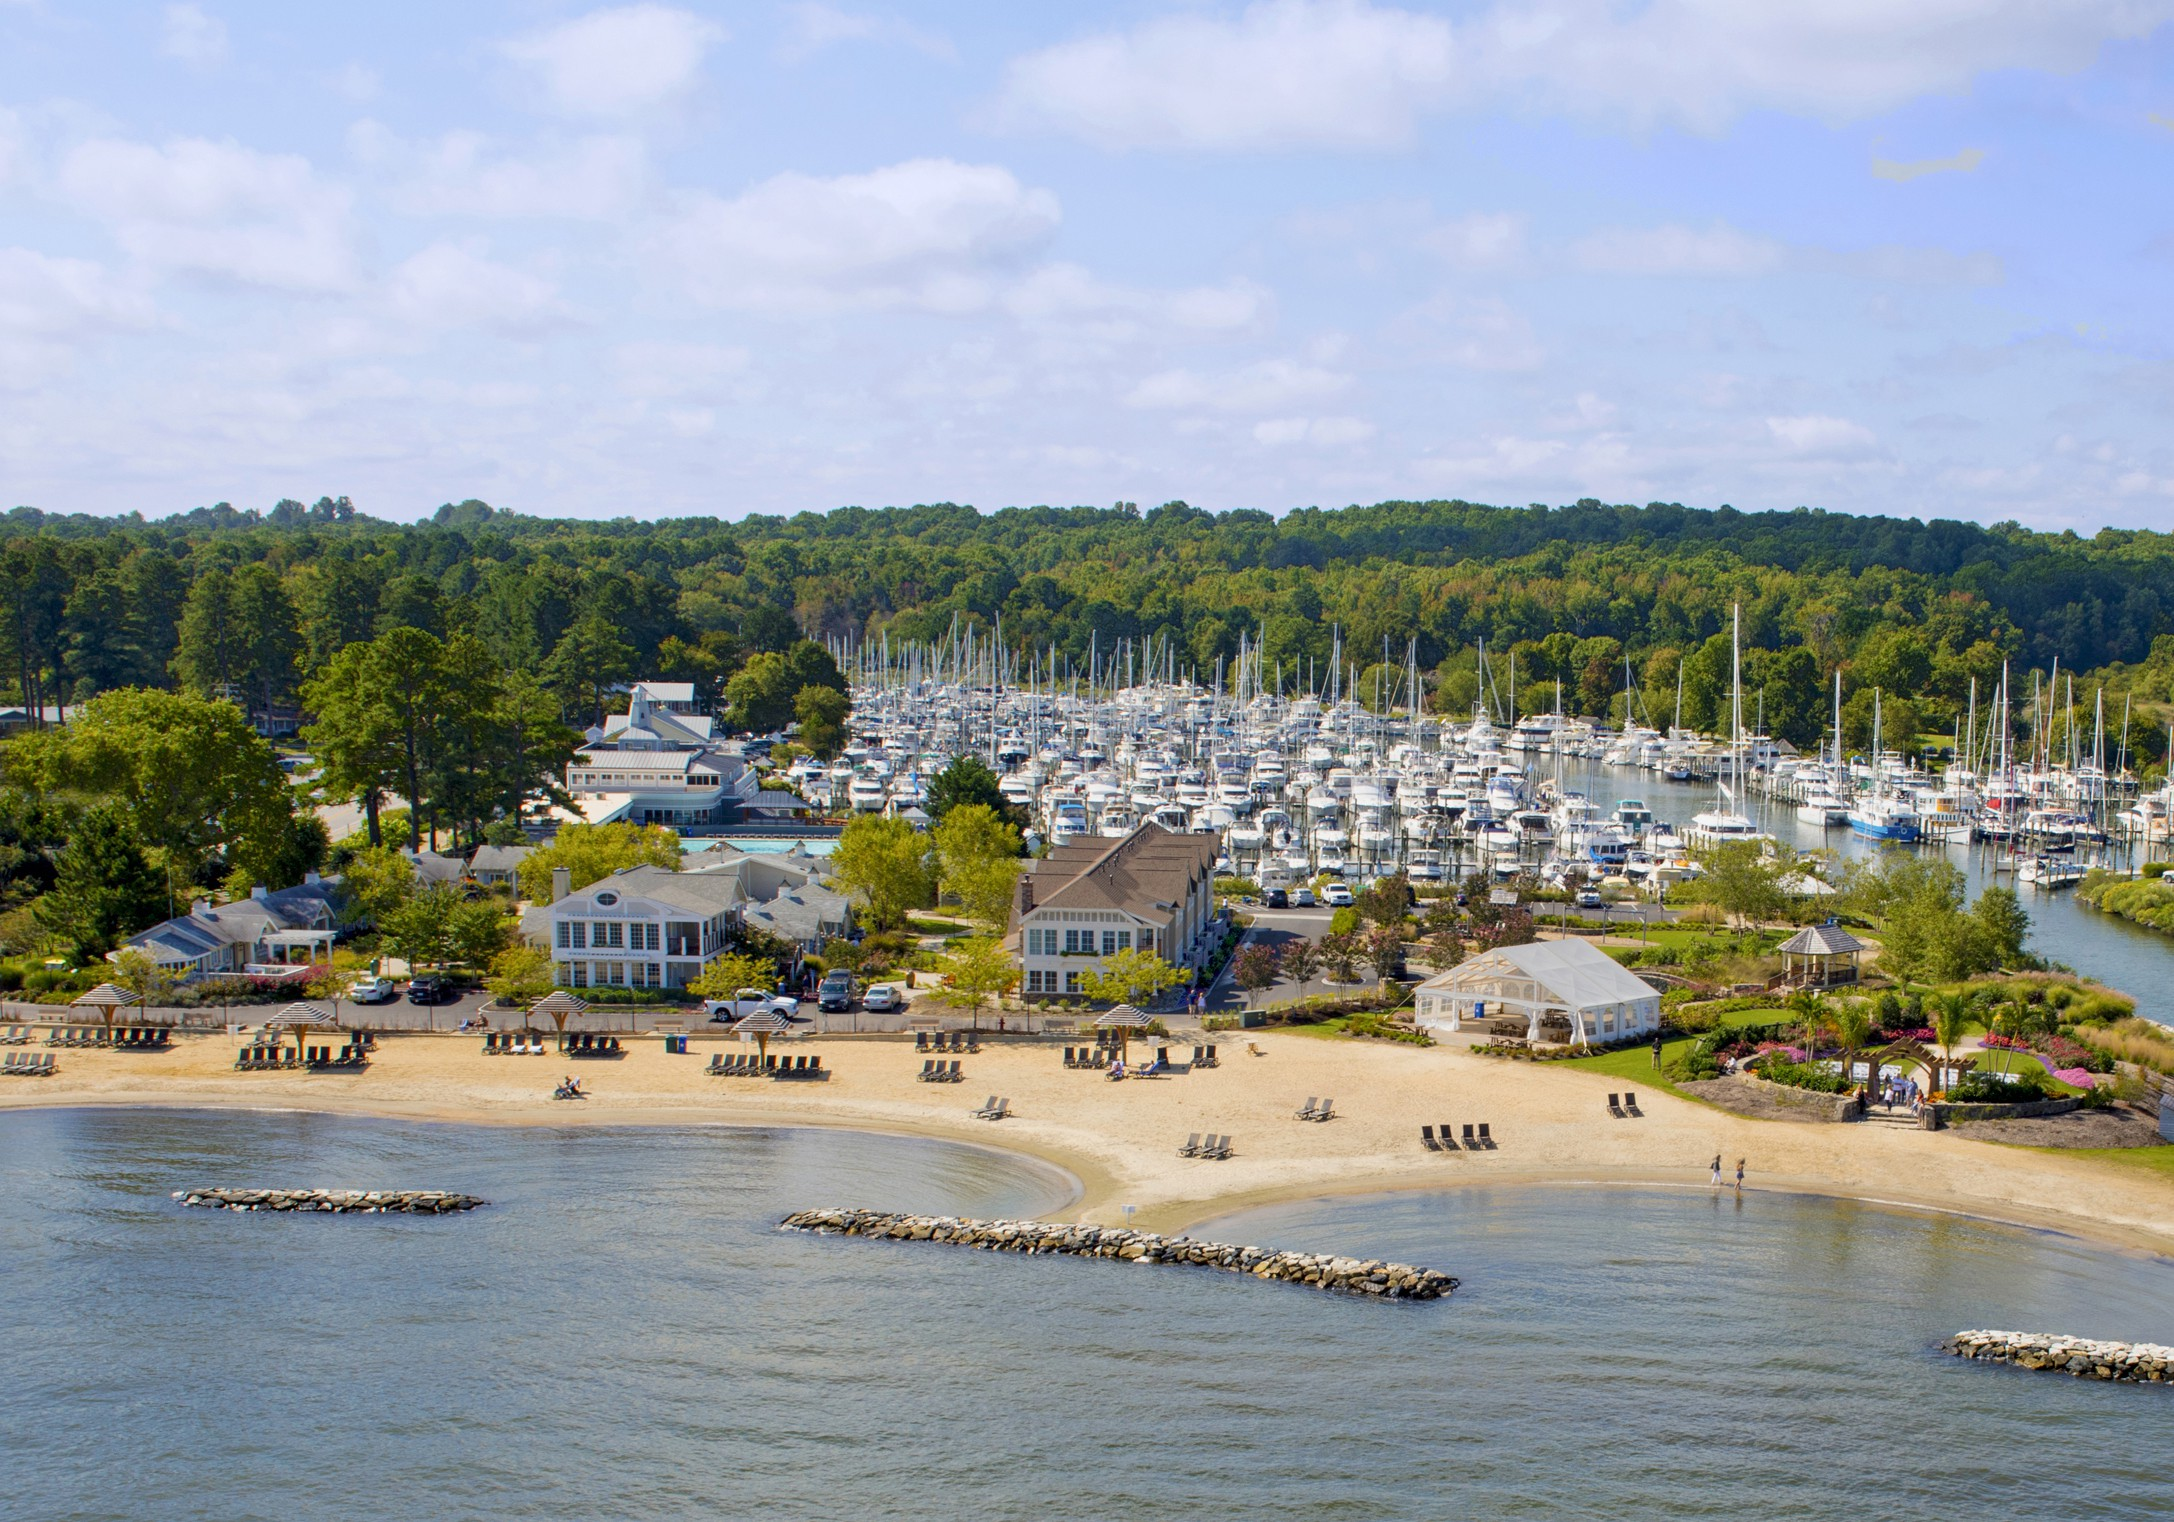 Marthas_Vineyard1.jpg